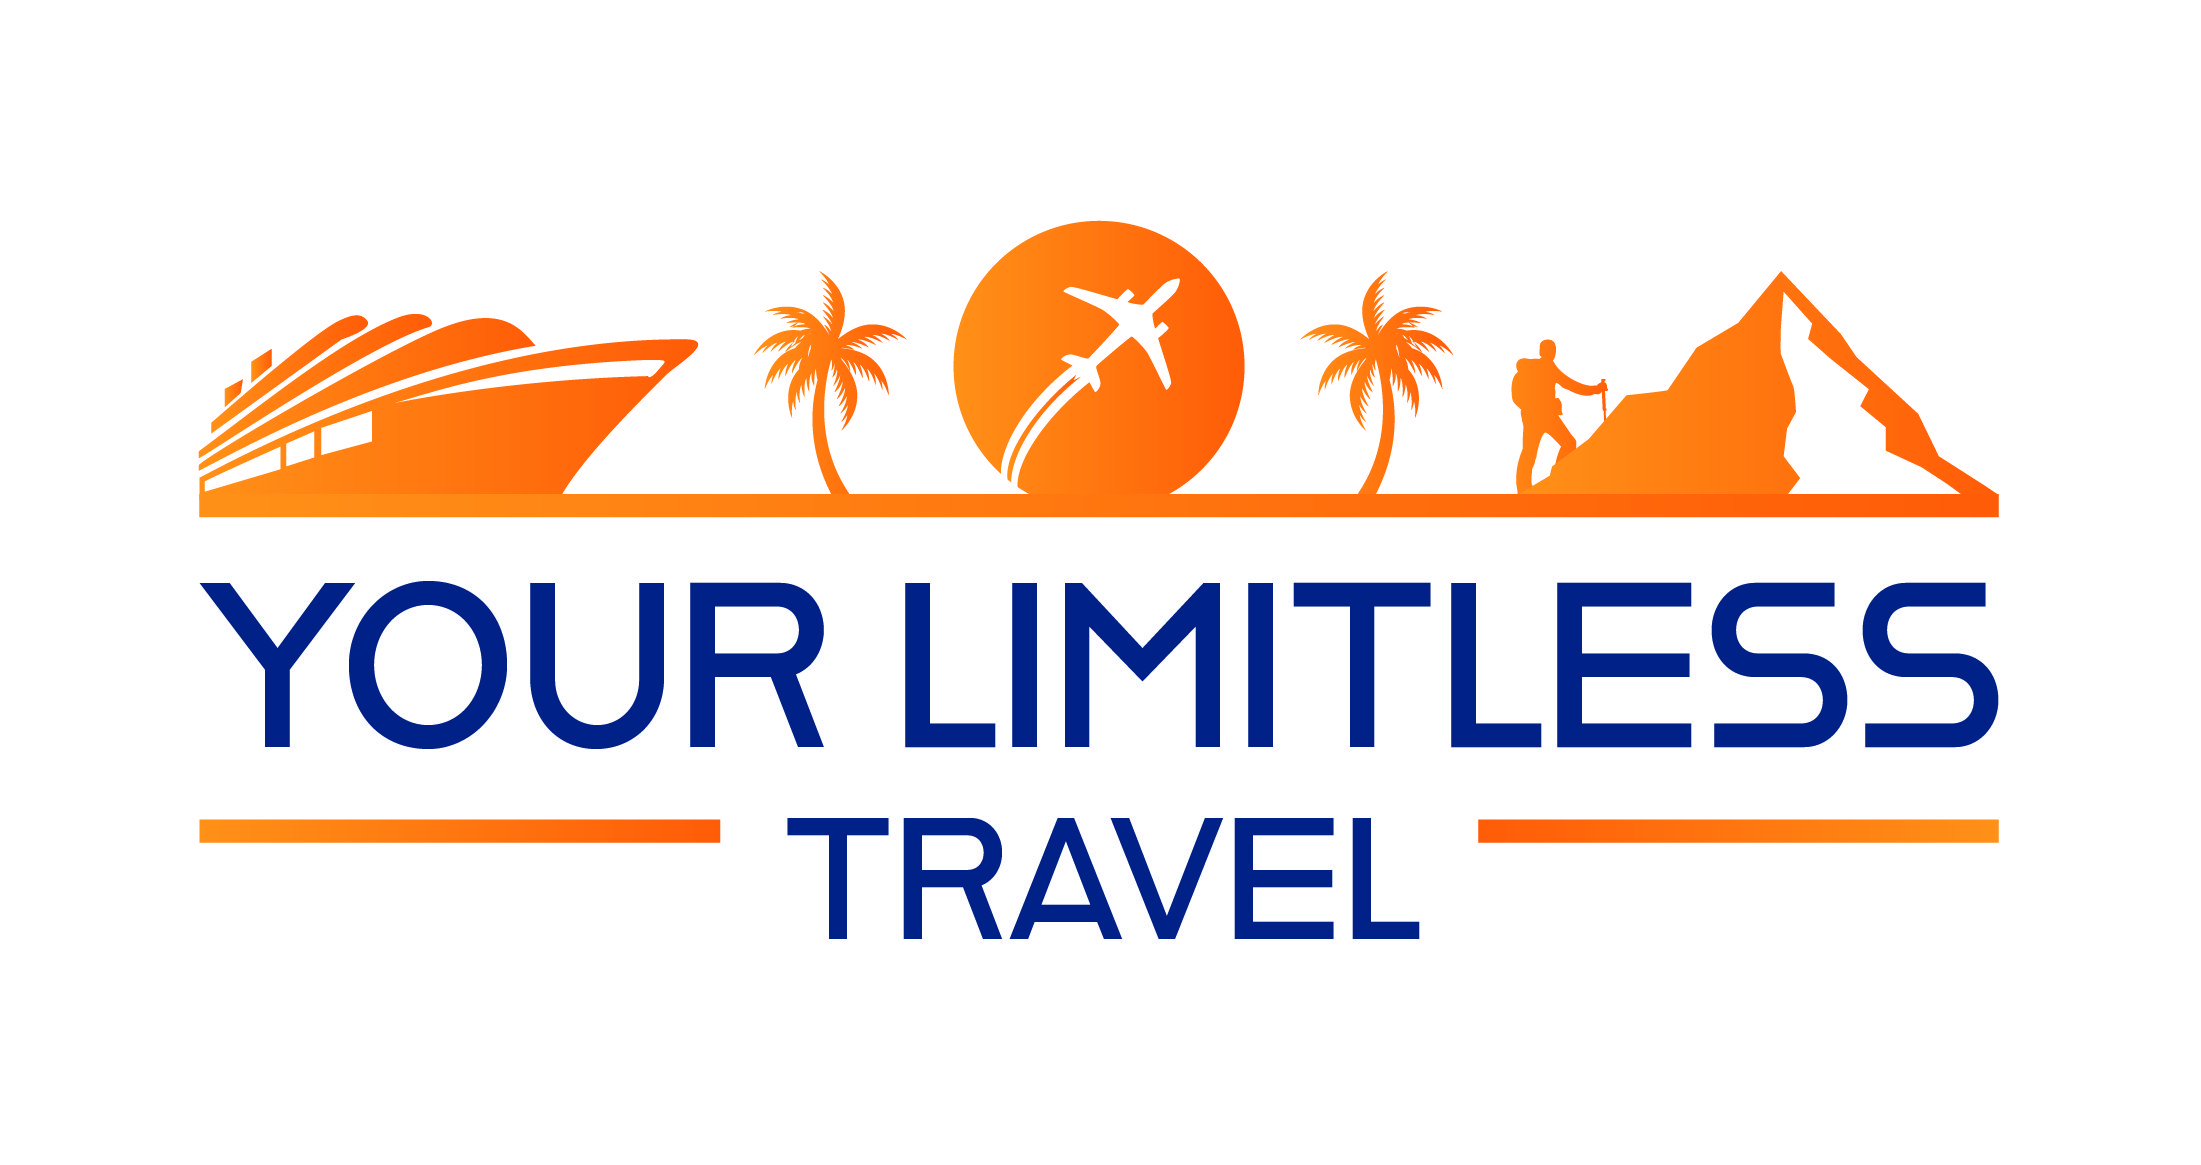 Your Limitless Travel